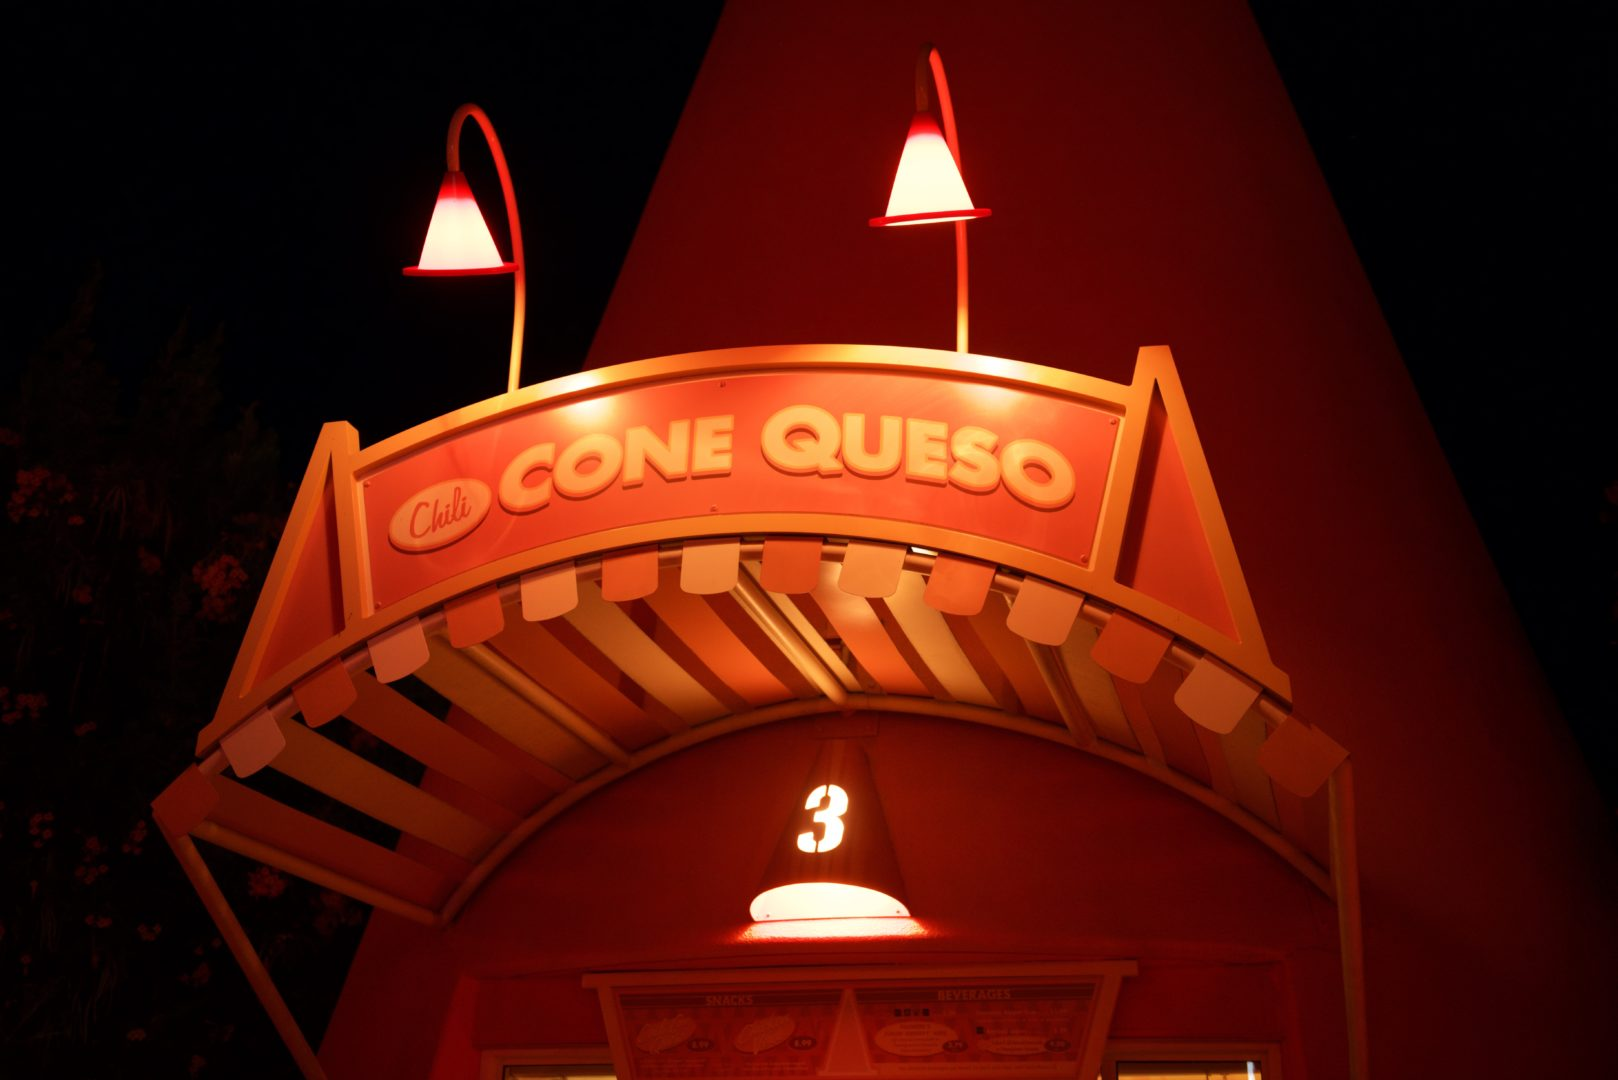 Cars Land Cozy Cone Queso Motel at Disneyland's California Adventure